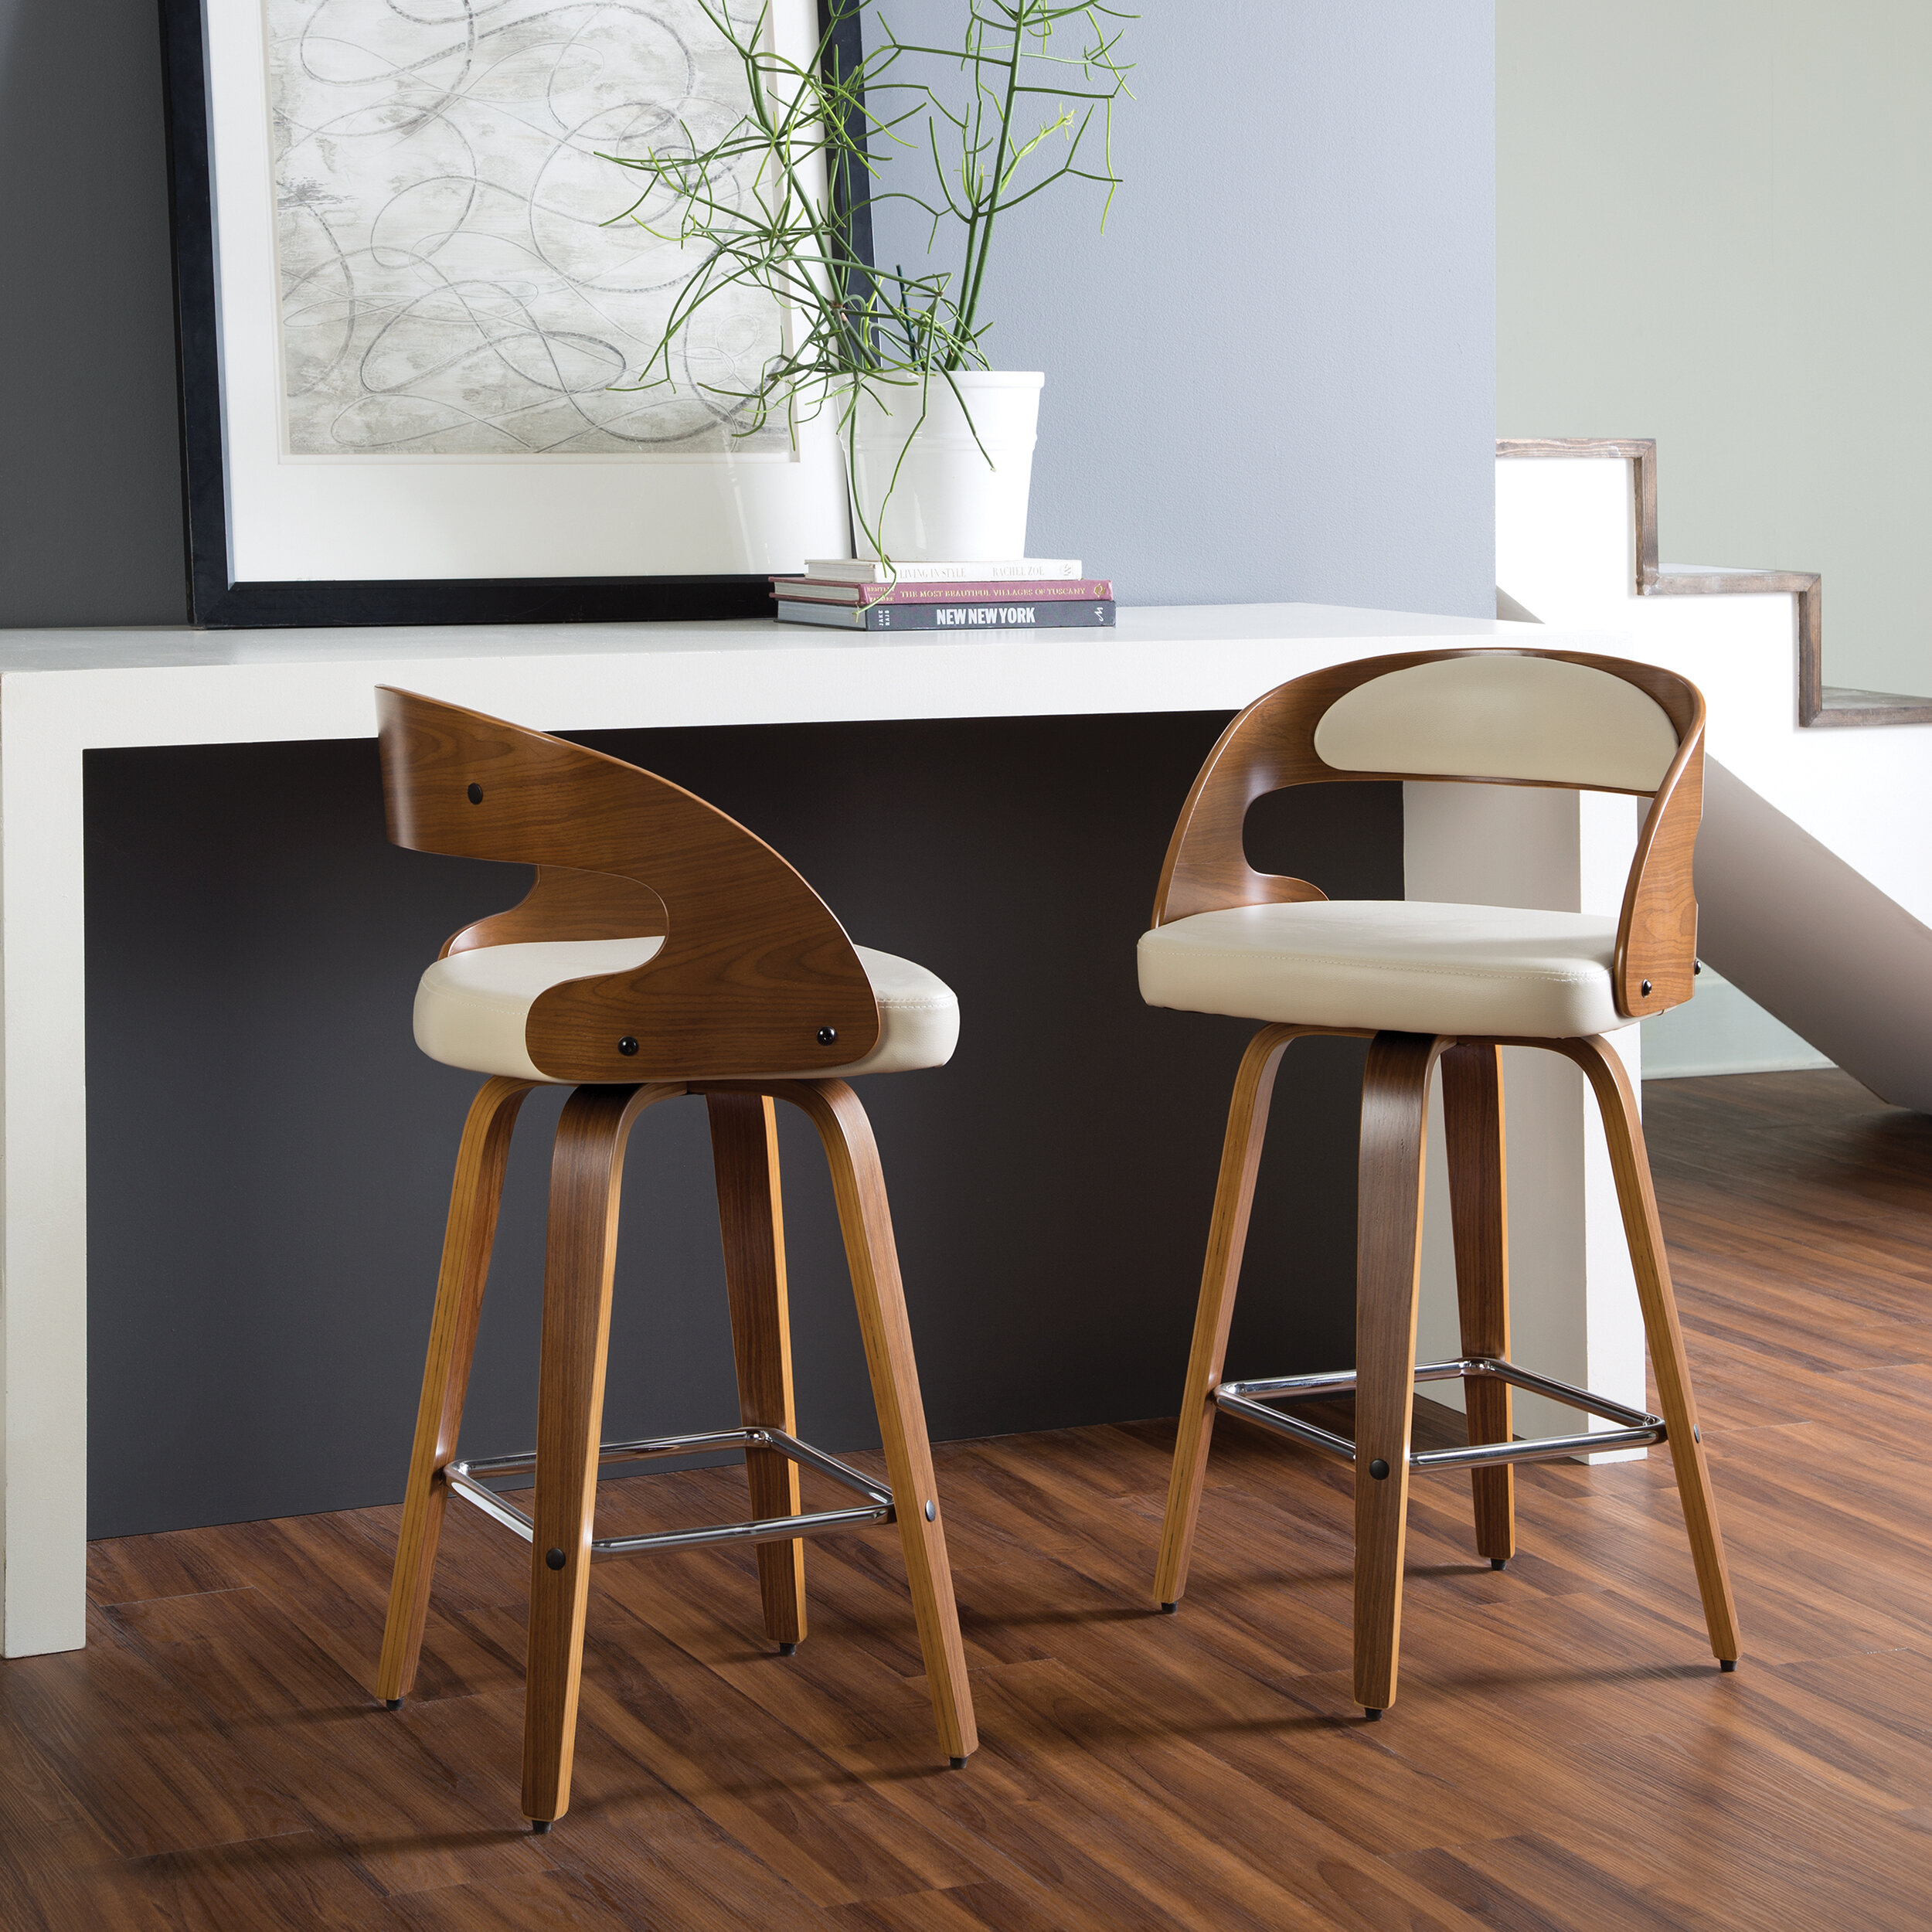 Image of: George Oliver Lachapelle Swivel Counter Stool Reviews Wayfair